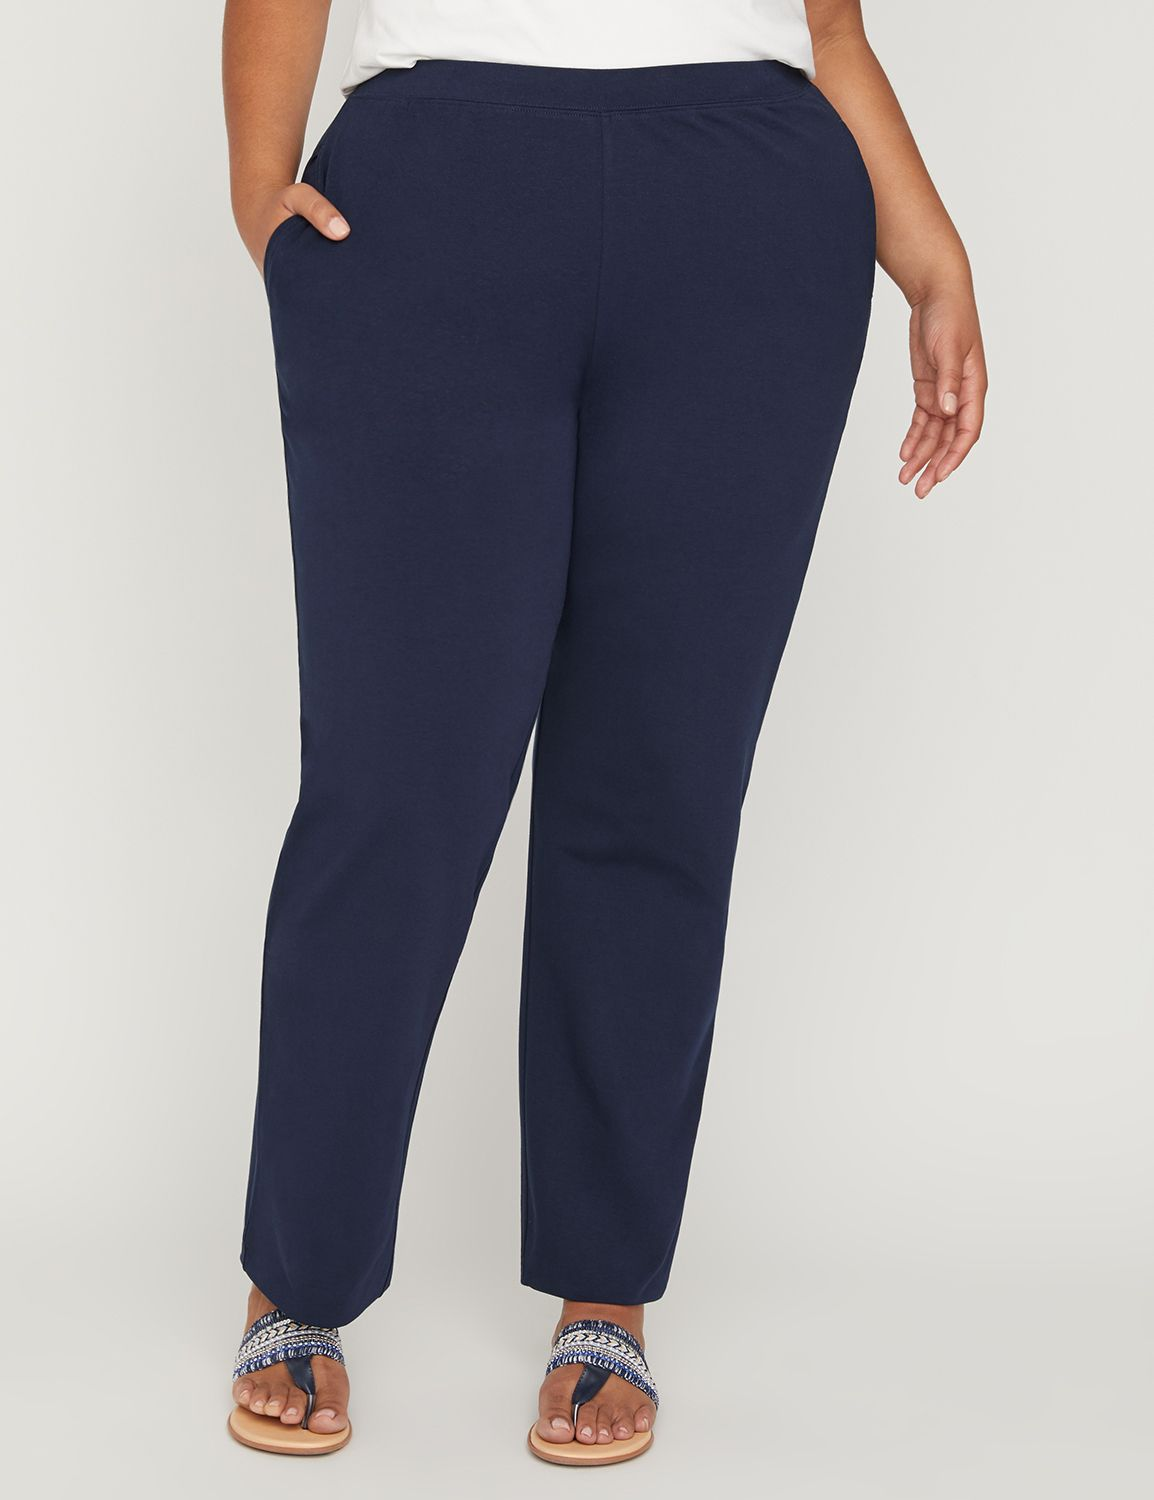 Suprema Knit Pant (Classic Colors) Suprema Knit Pant (Classic Colors) MP-300009641